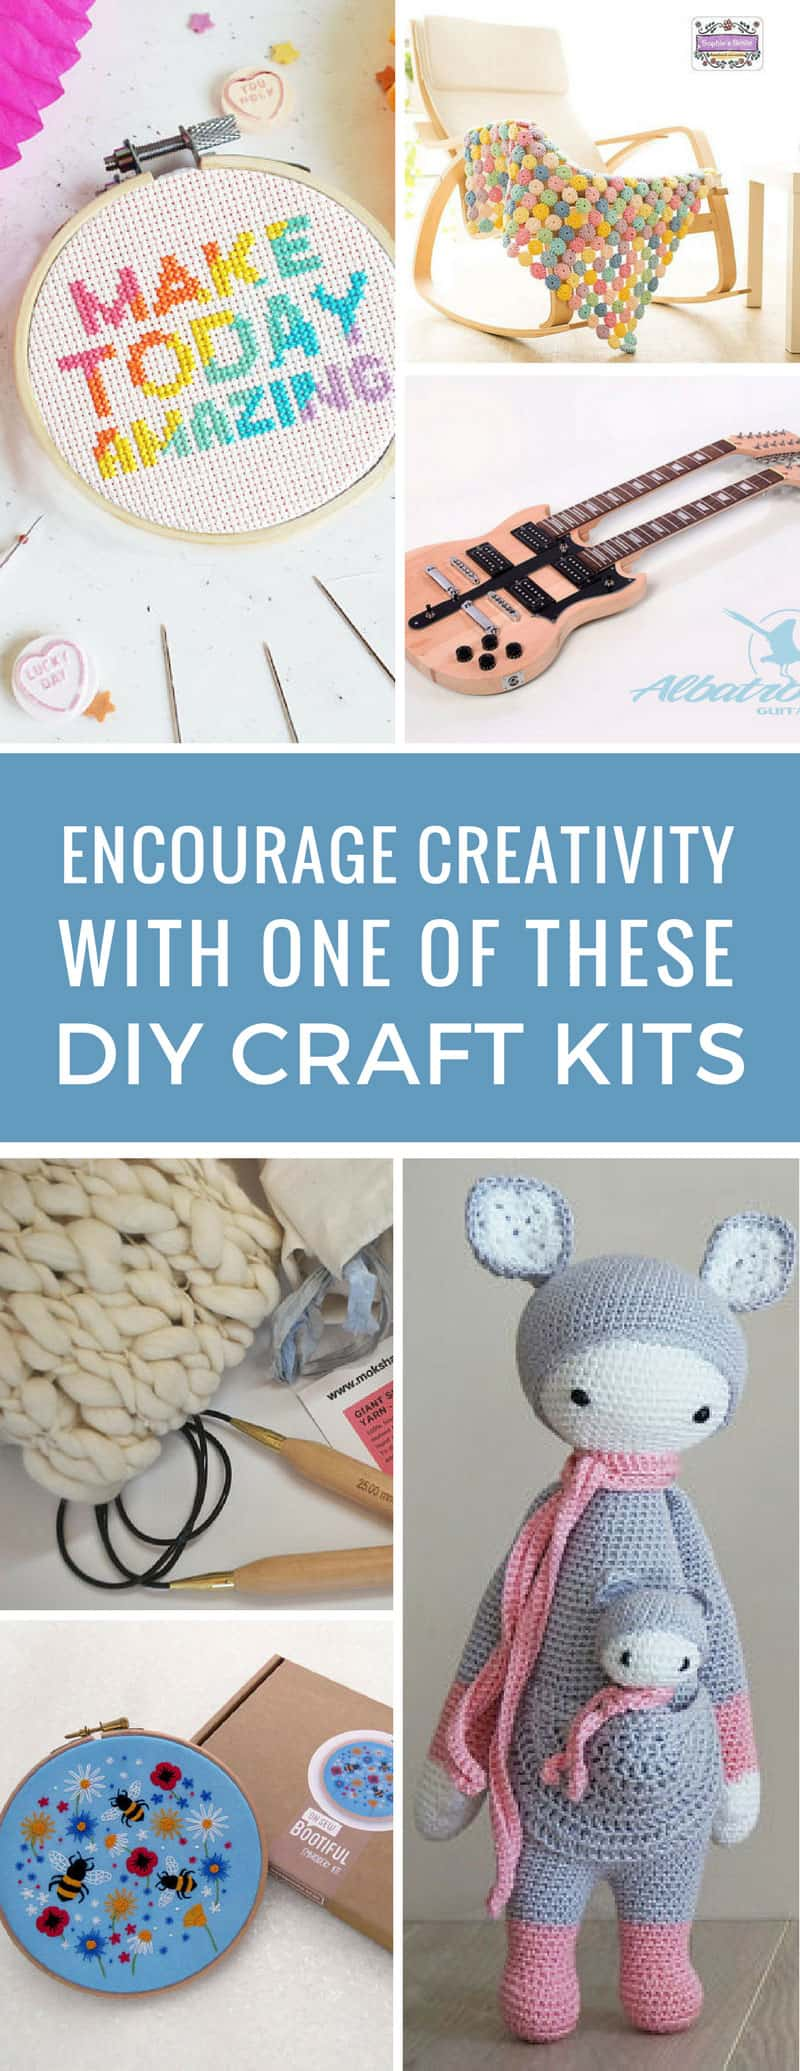 Christmas gifts for my crafty friends sorted! These DIY craft kits will get them hooked on something new! Thanks for sharing!